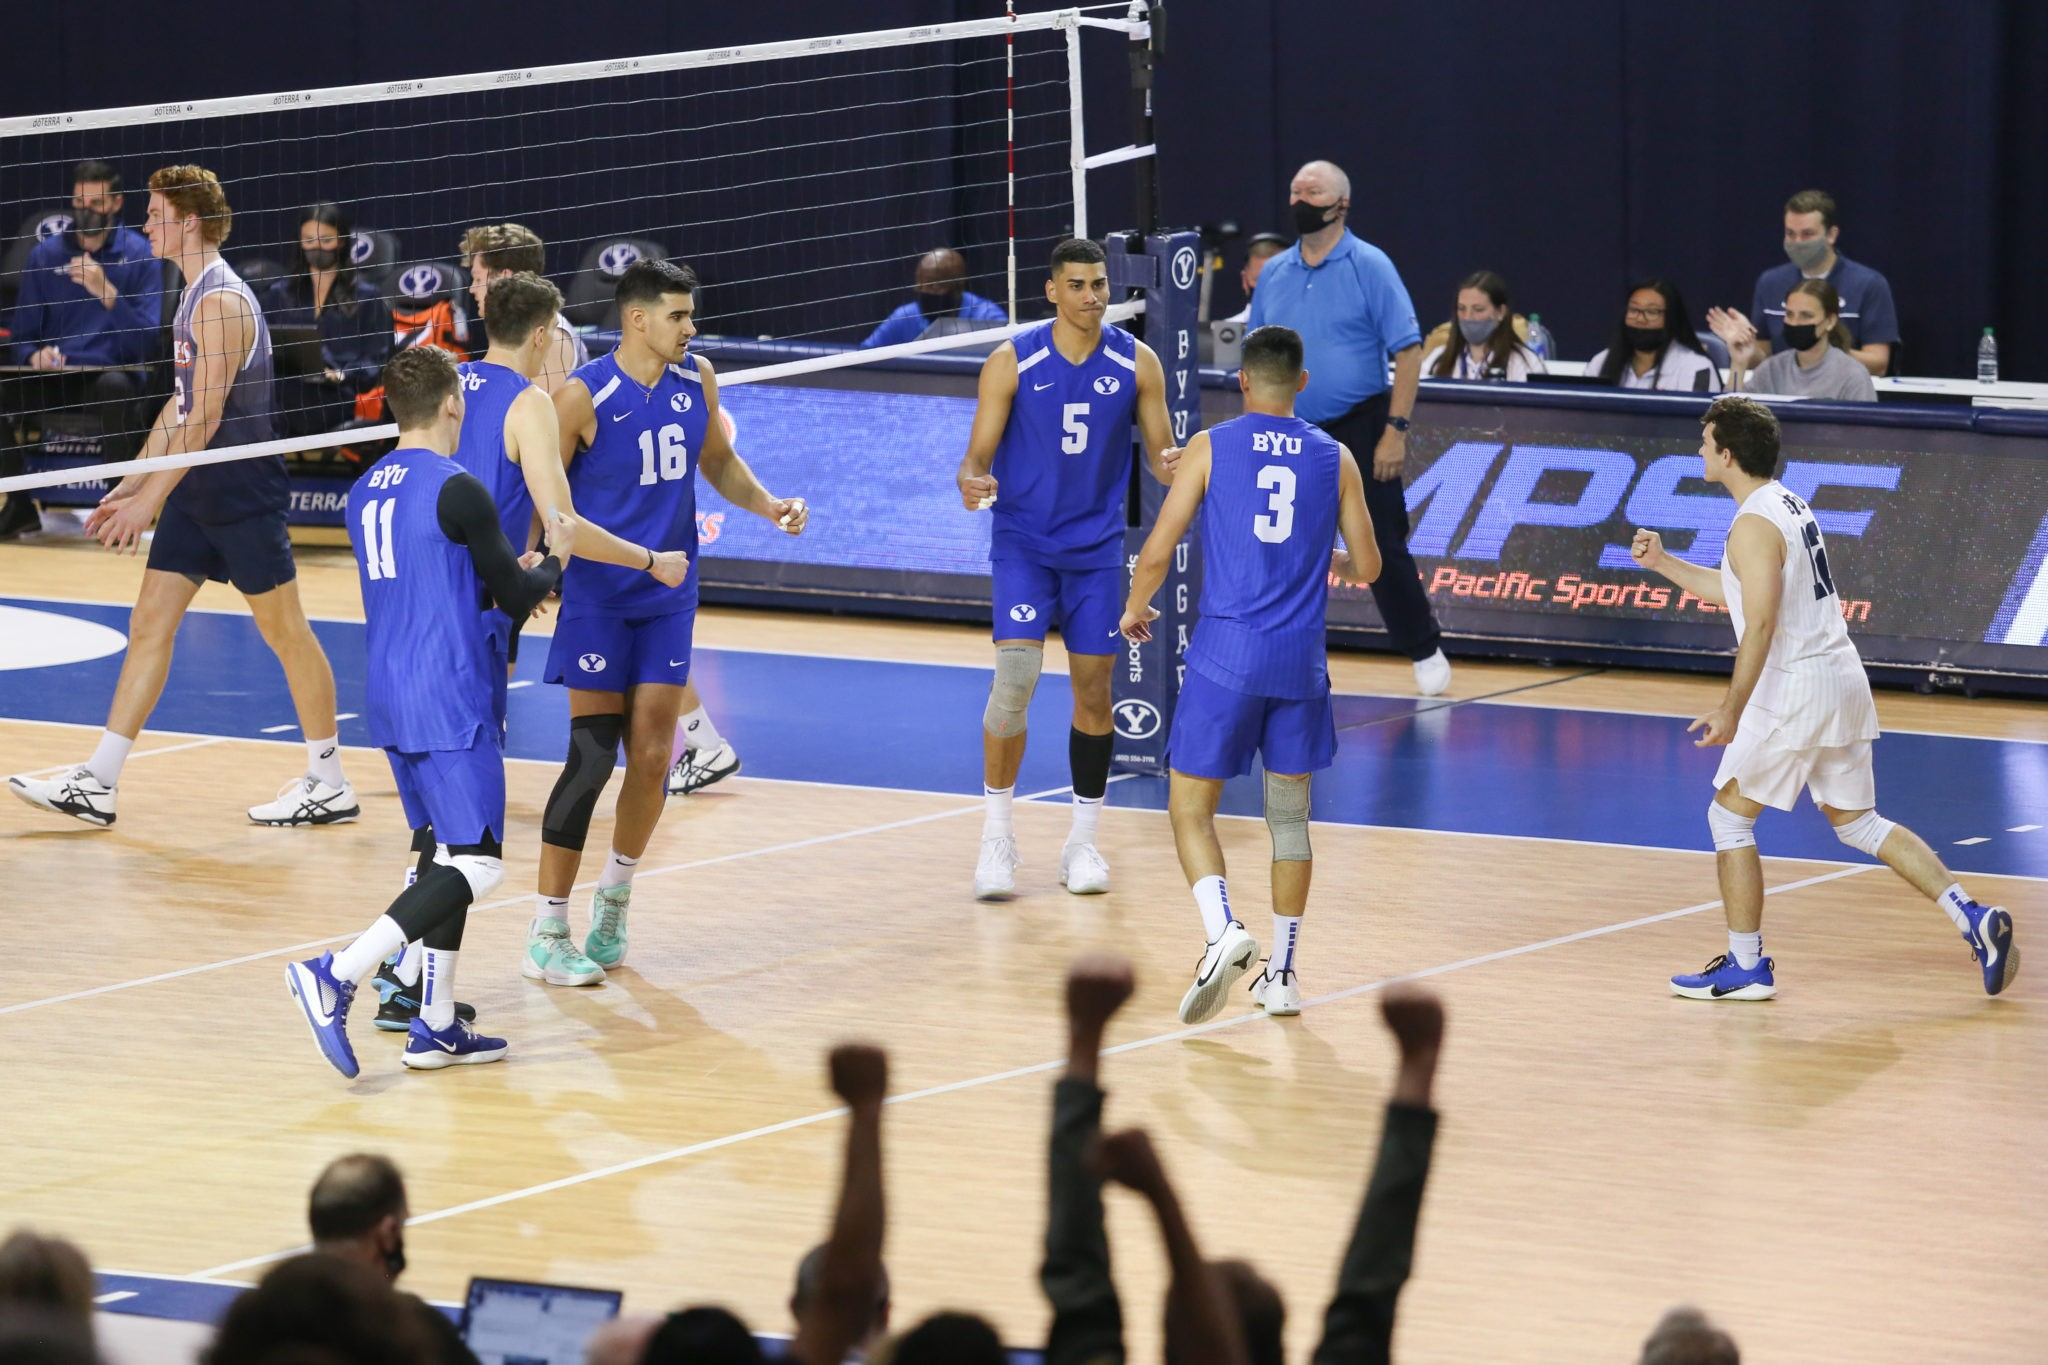 BYU men's volleyball sweeps Pepperdine in MPSF Championship to earn NCAA Tournament bid